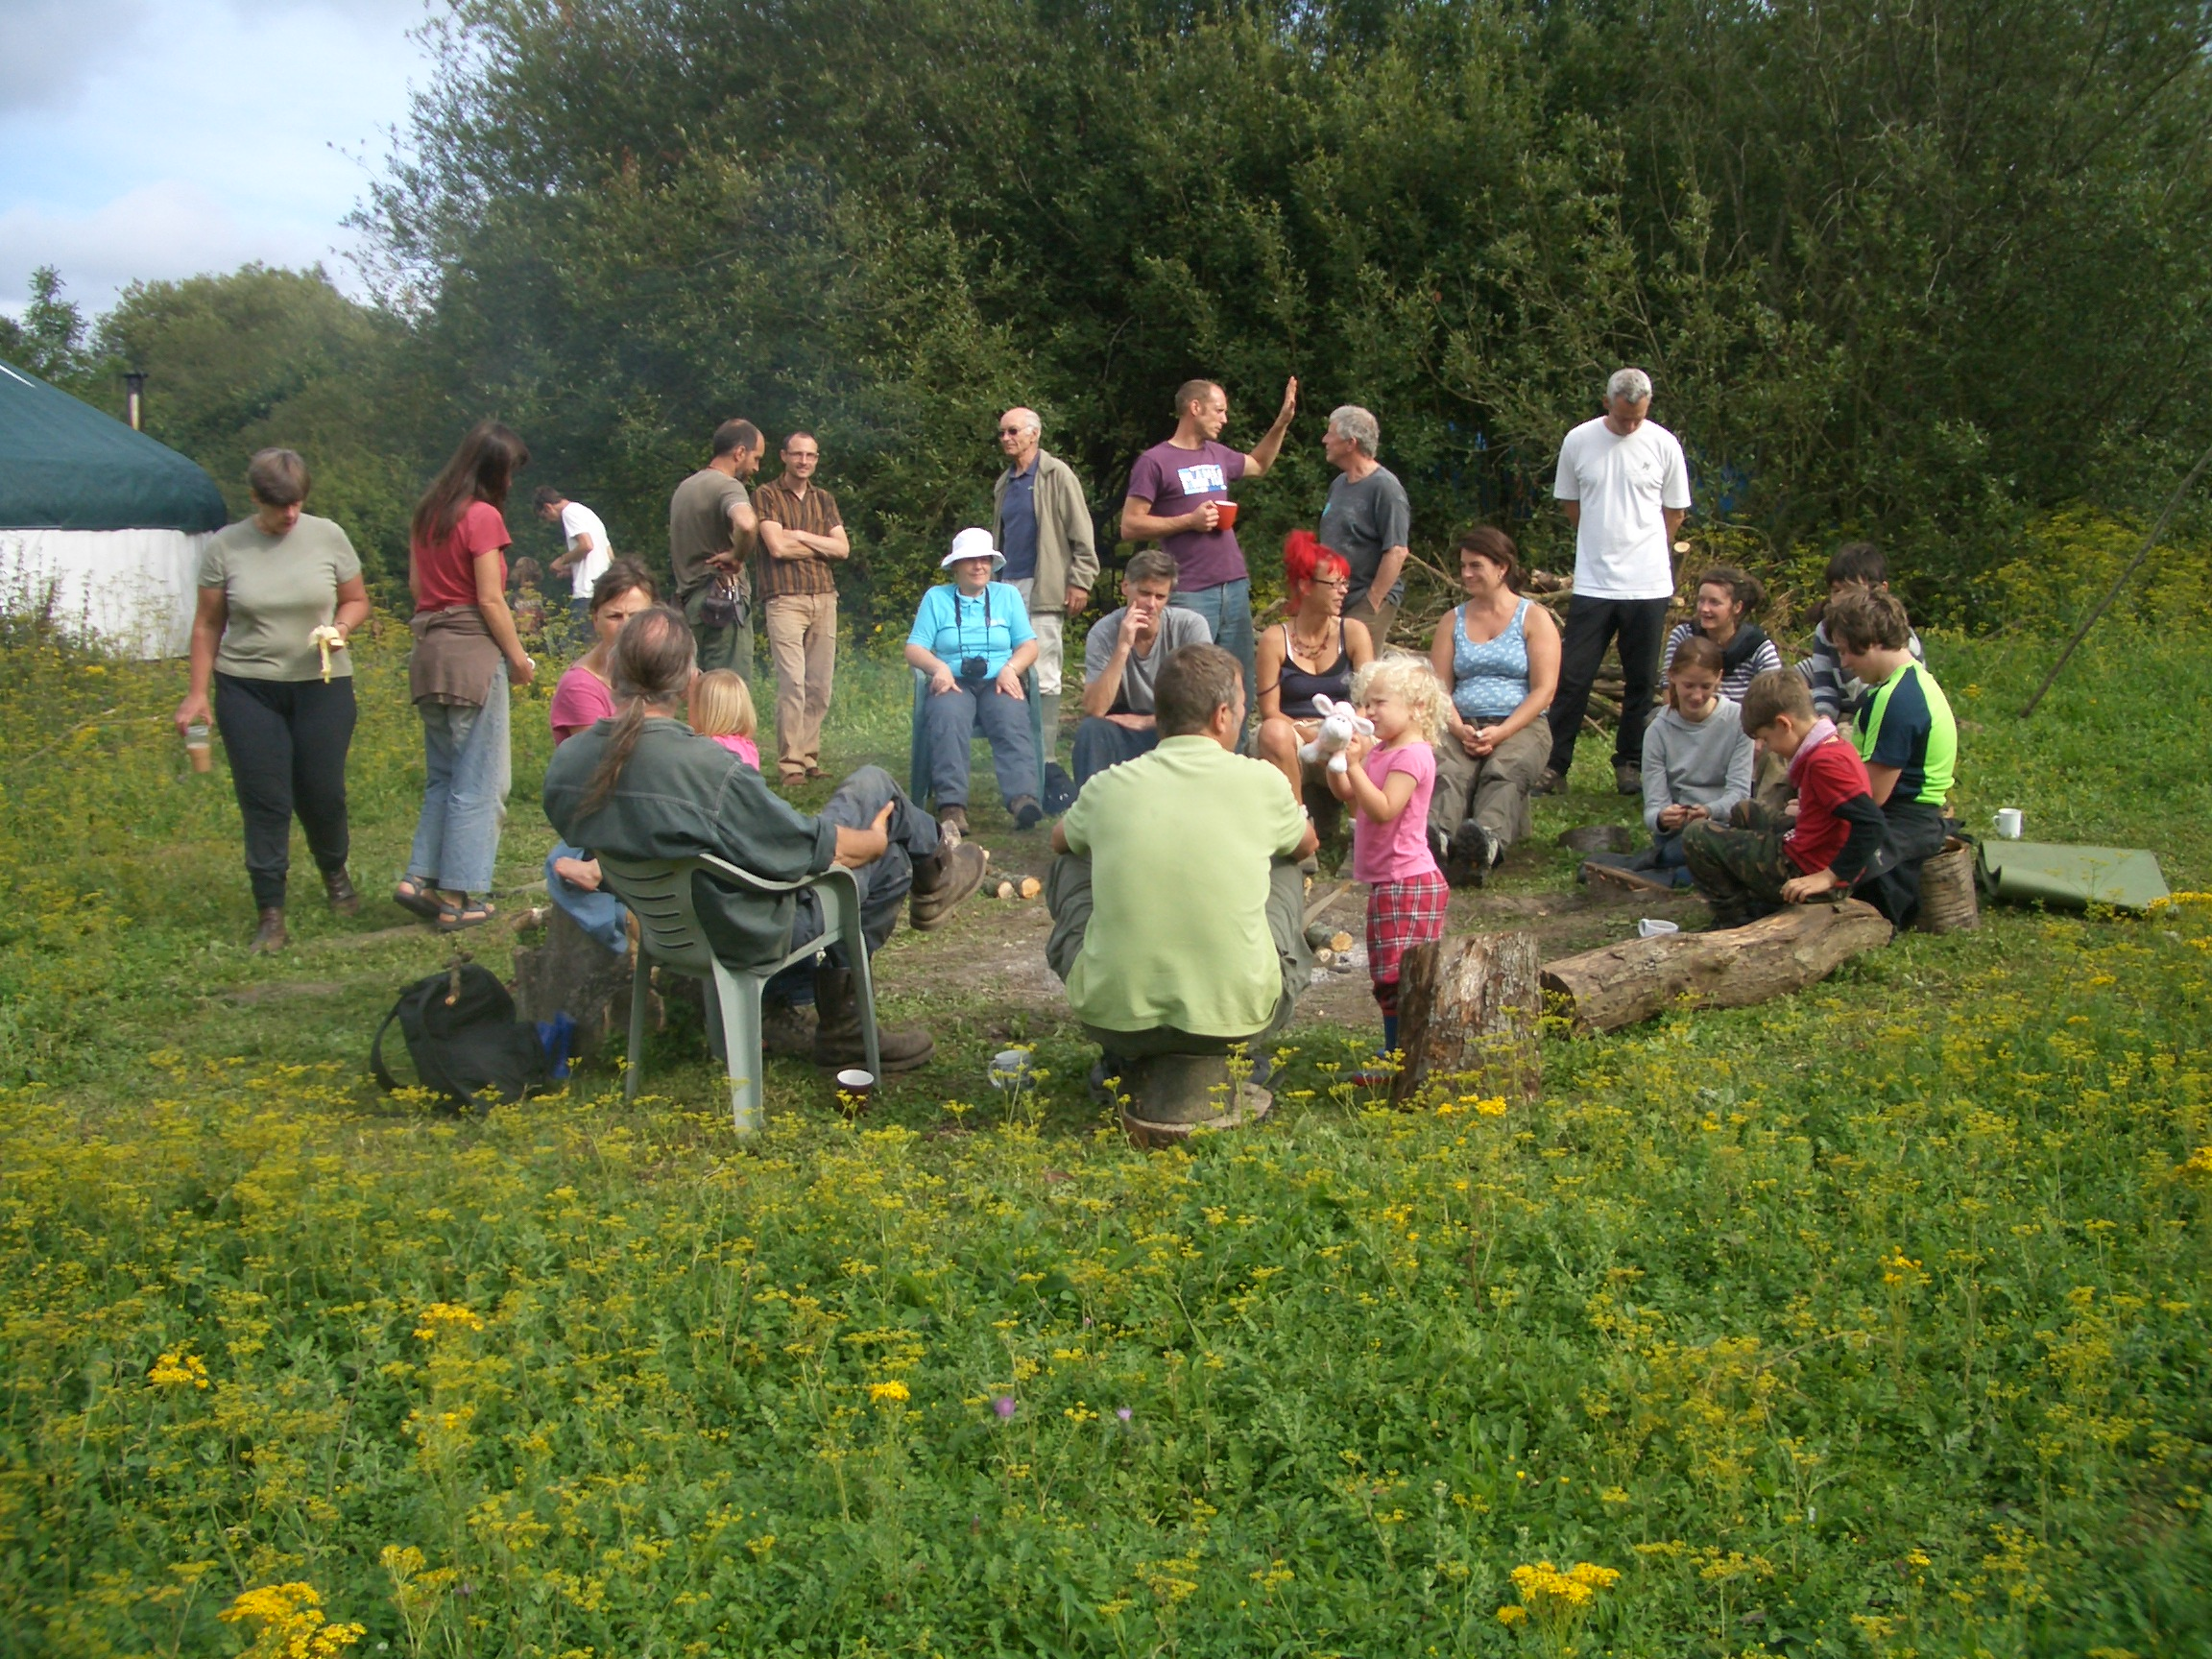 community-day-and-brittany-august-2011-012.jpg